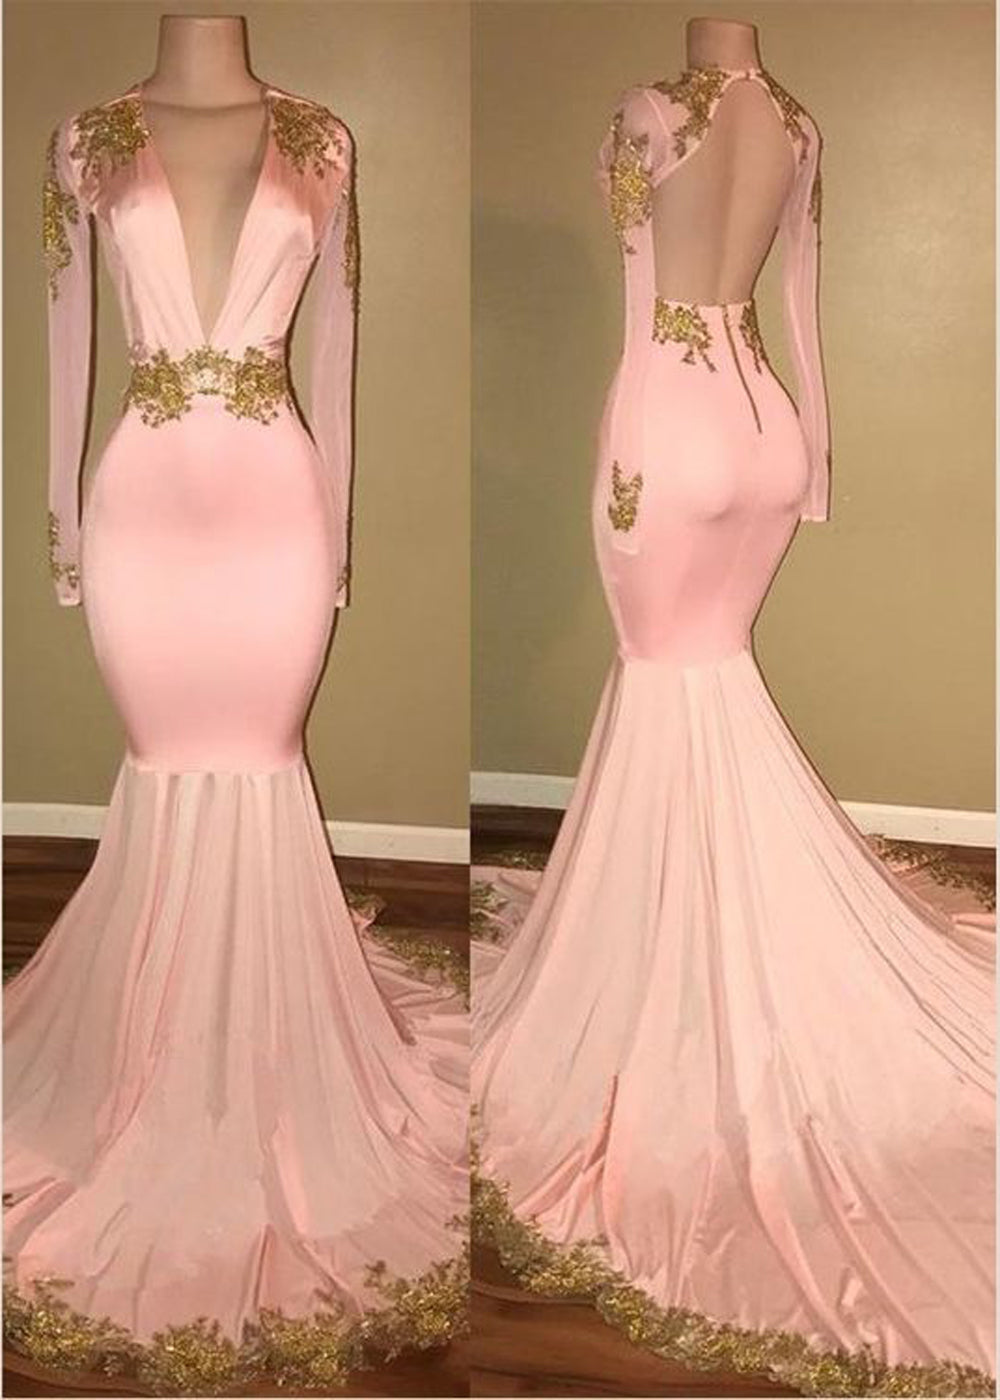 eaa987677e3 Open Back Long Sleeves Prom Dresses Sexy Mermaid Evening Gowns with Lace  Applique. Touch to zoom